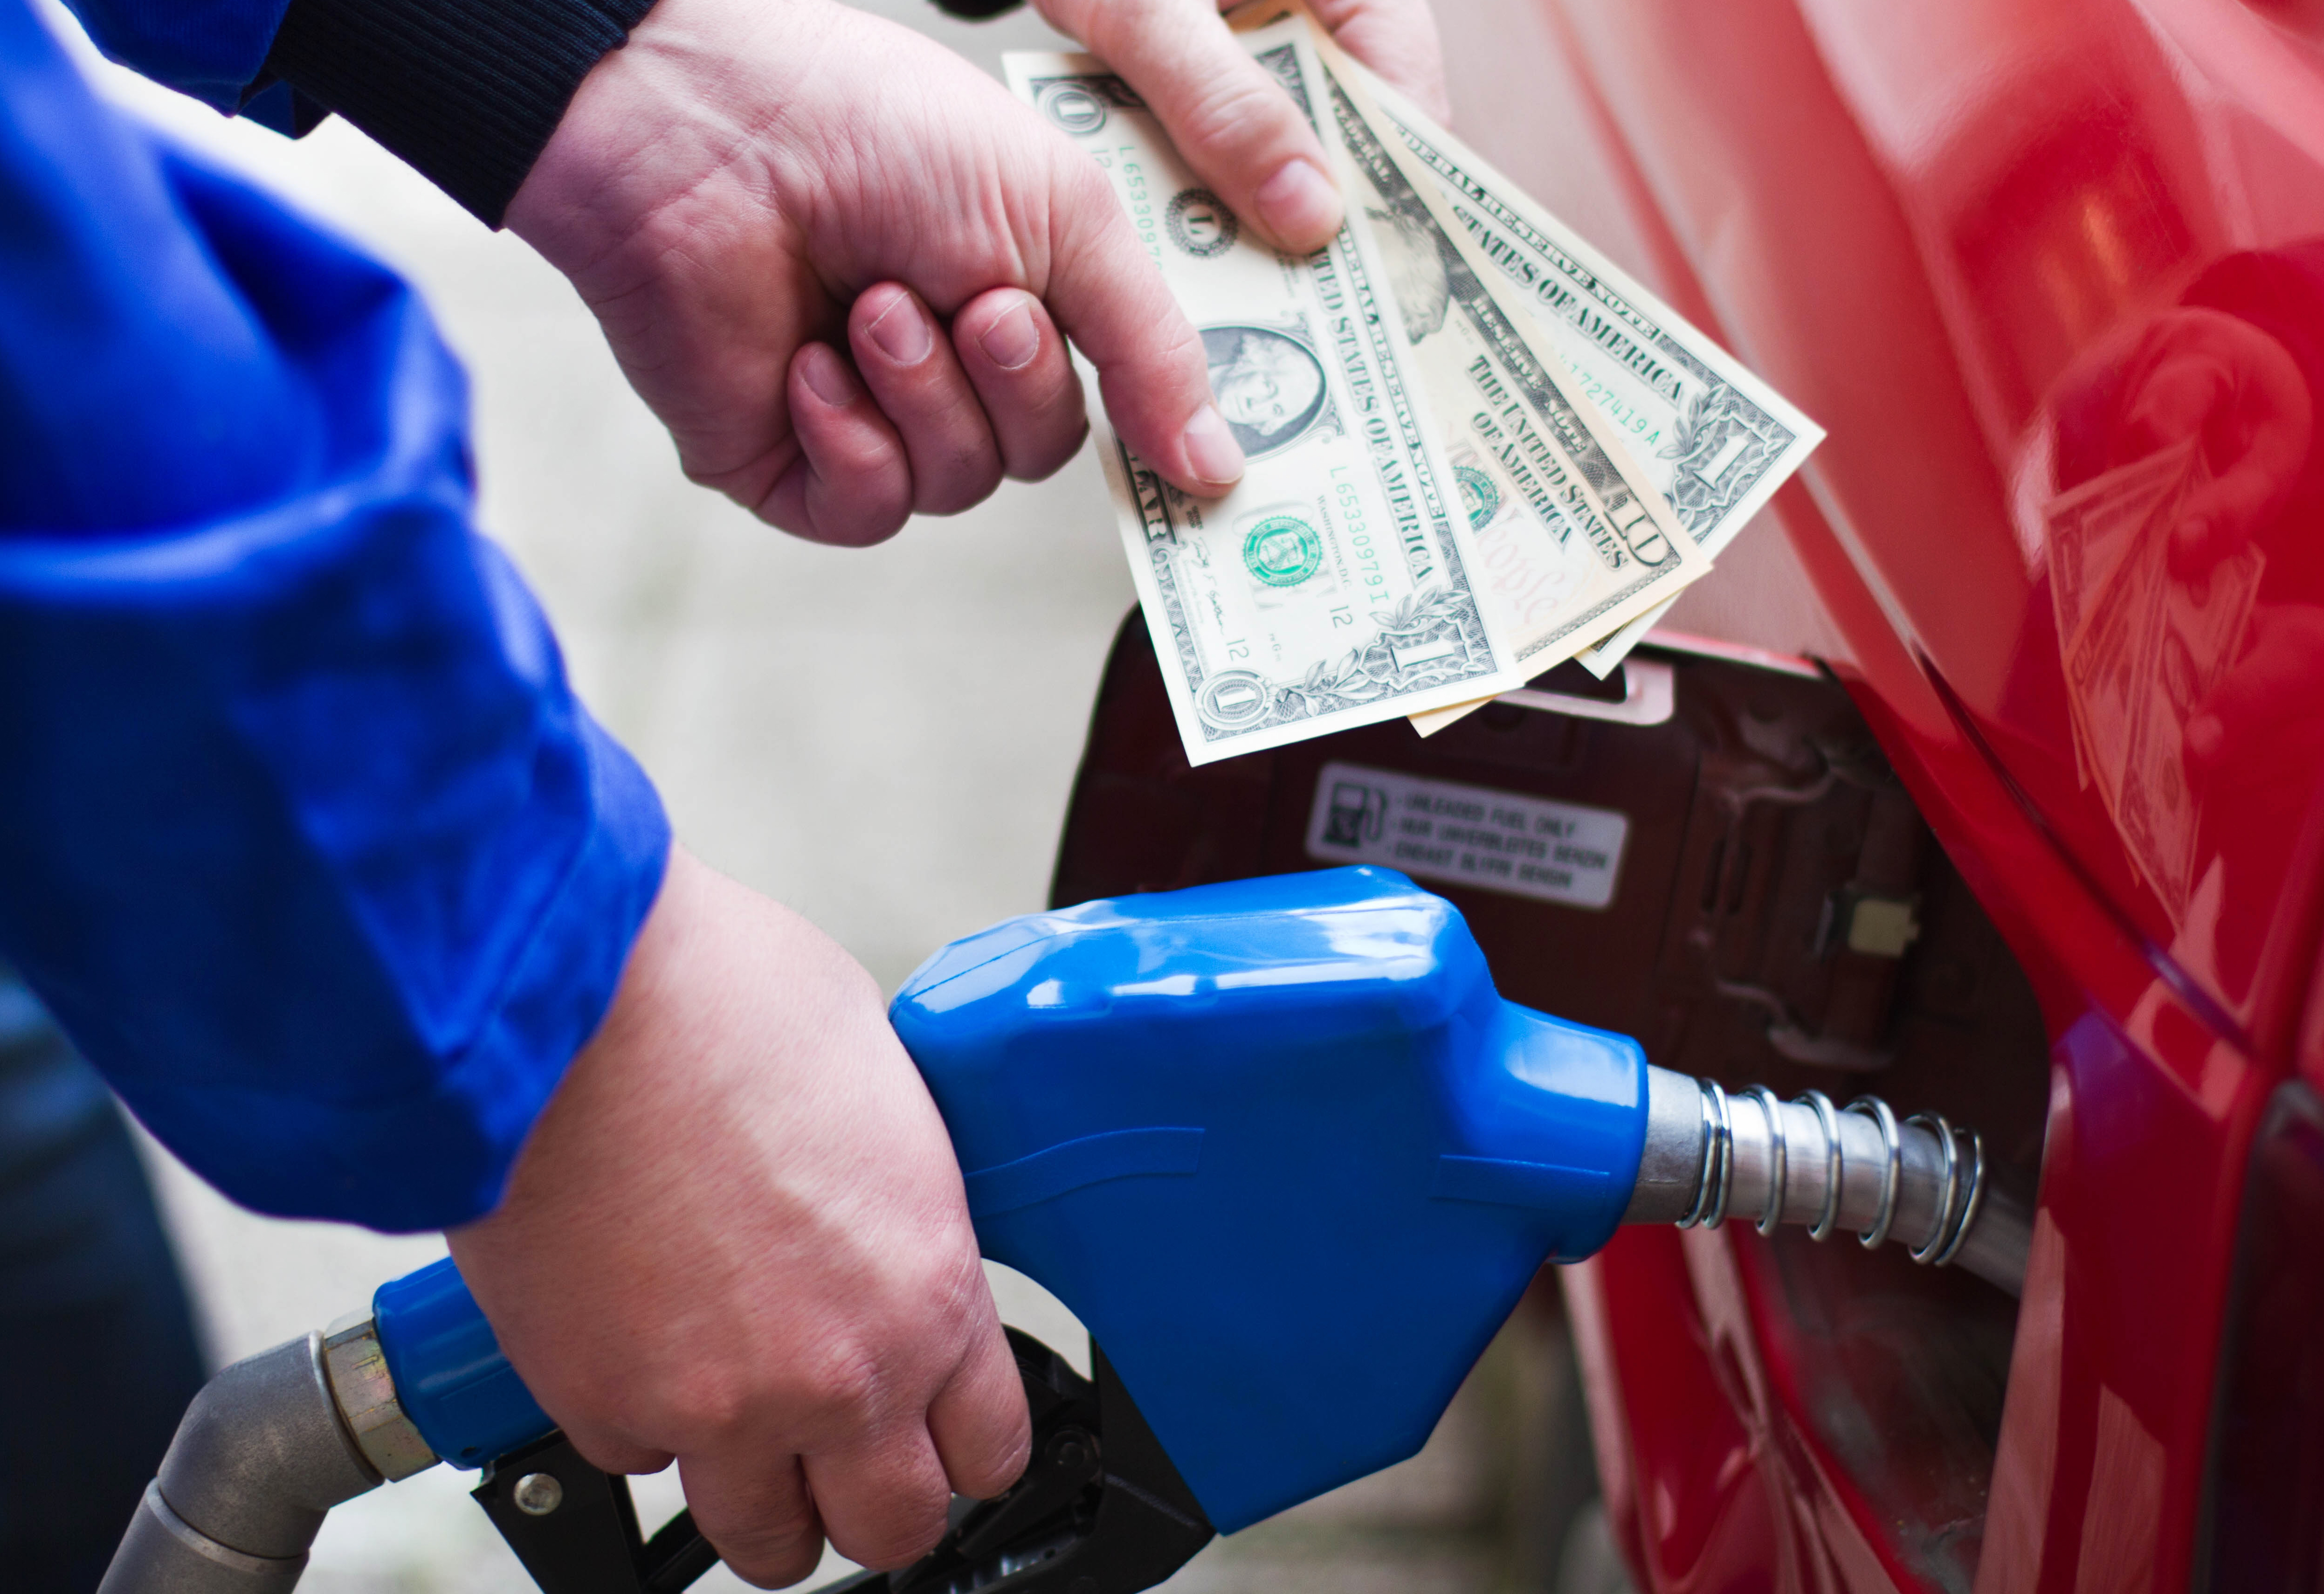 The most expensive gas prices in the Hamptons - Curbed Hamptons